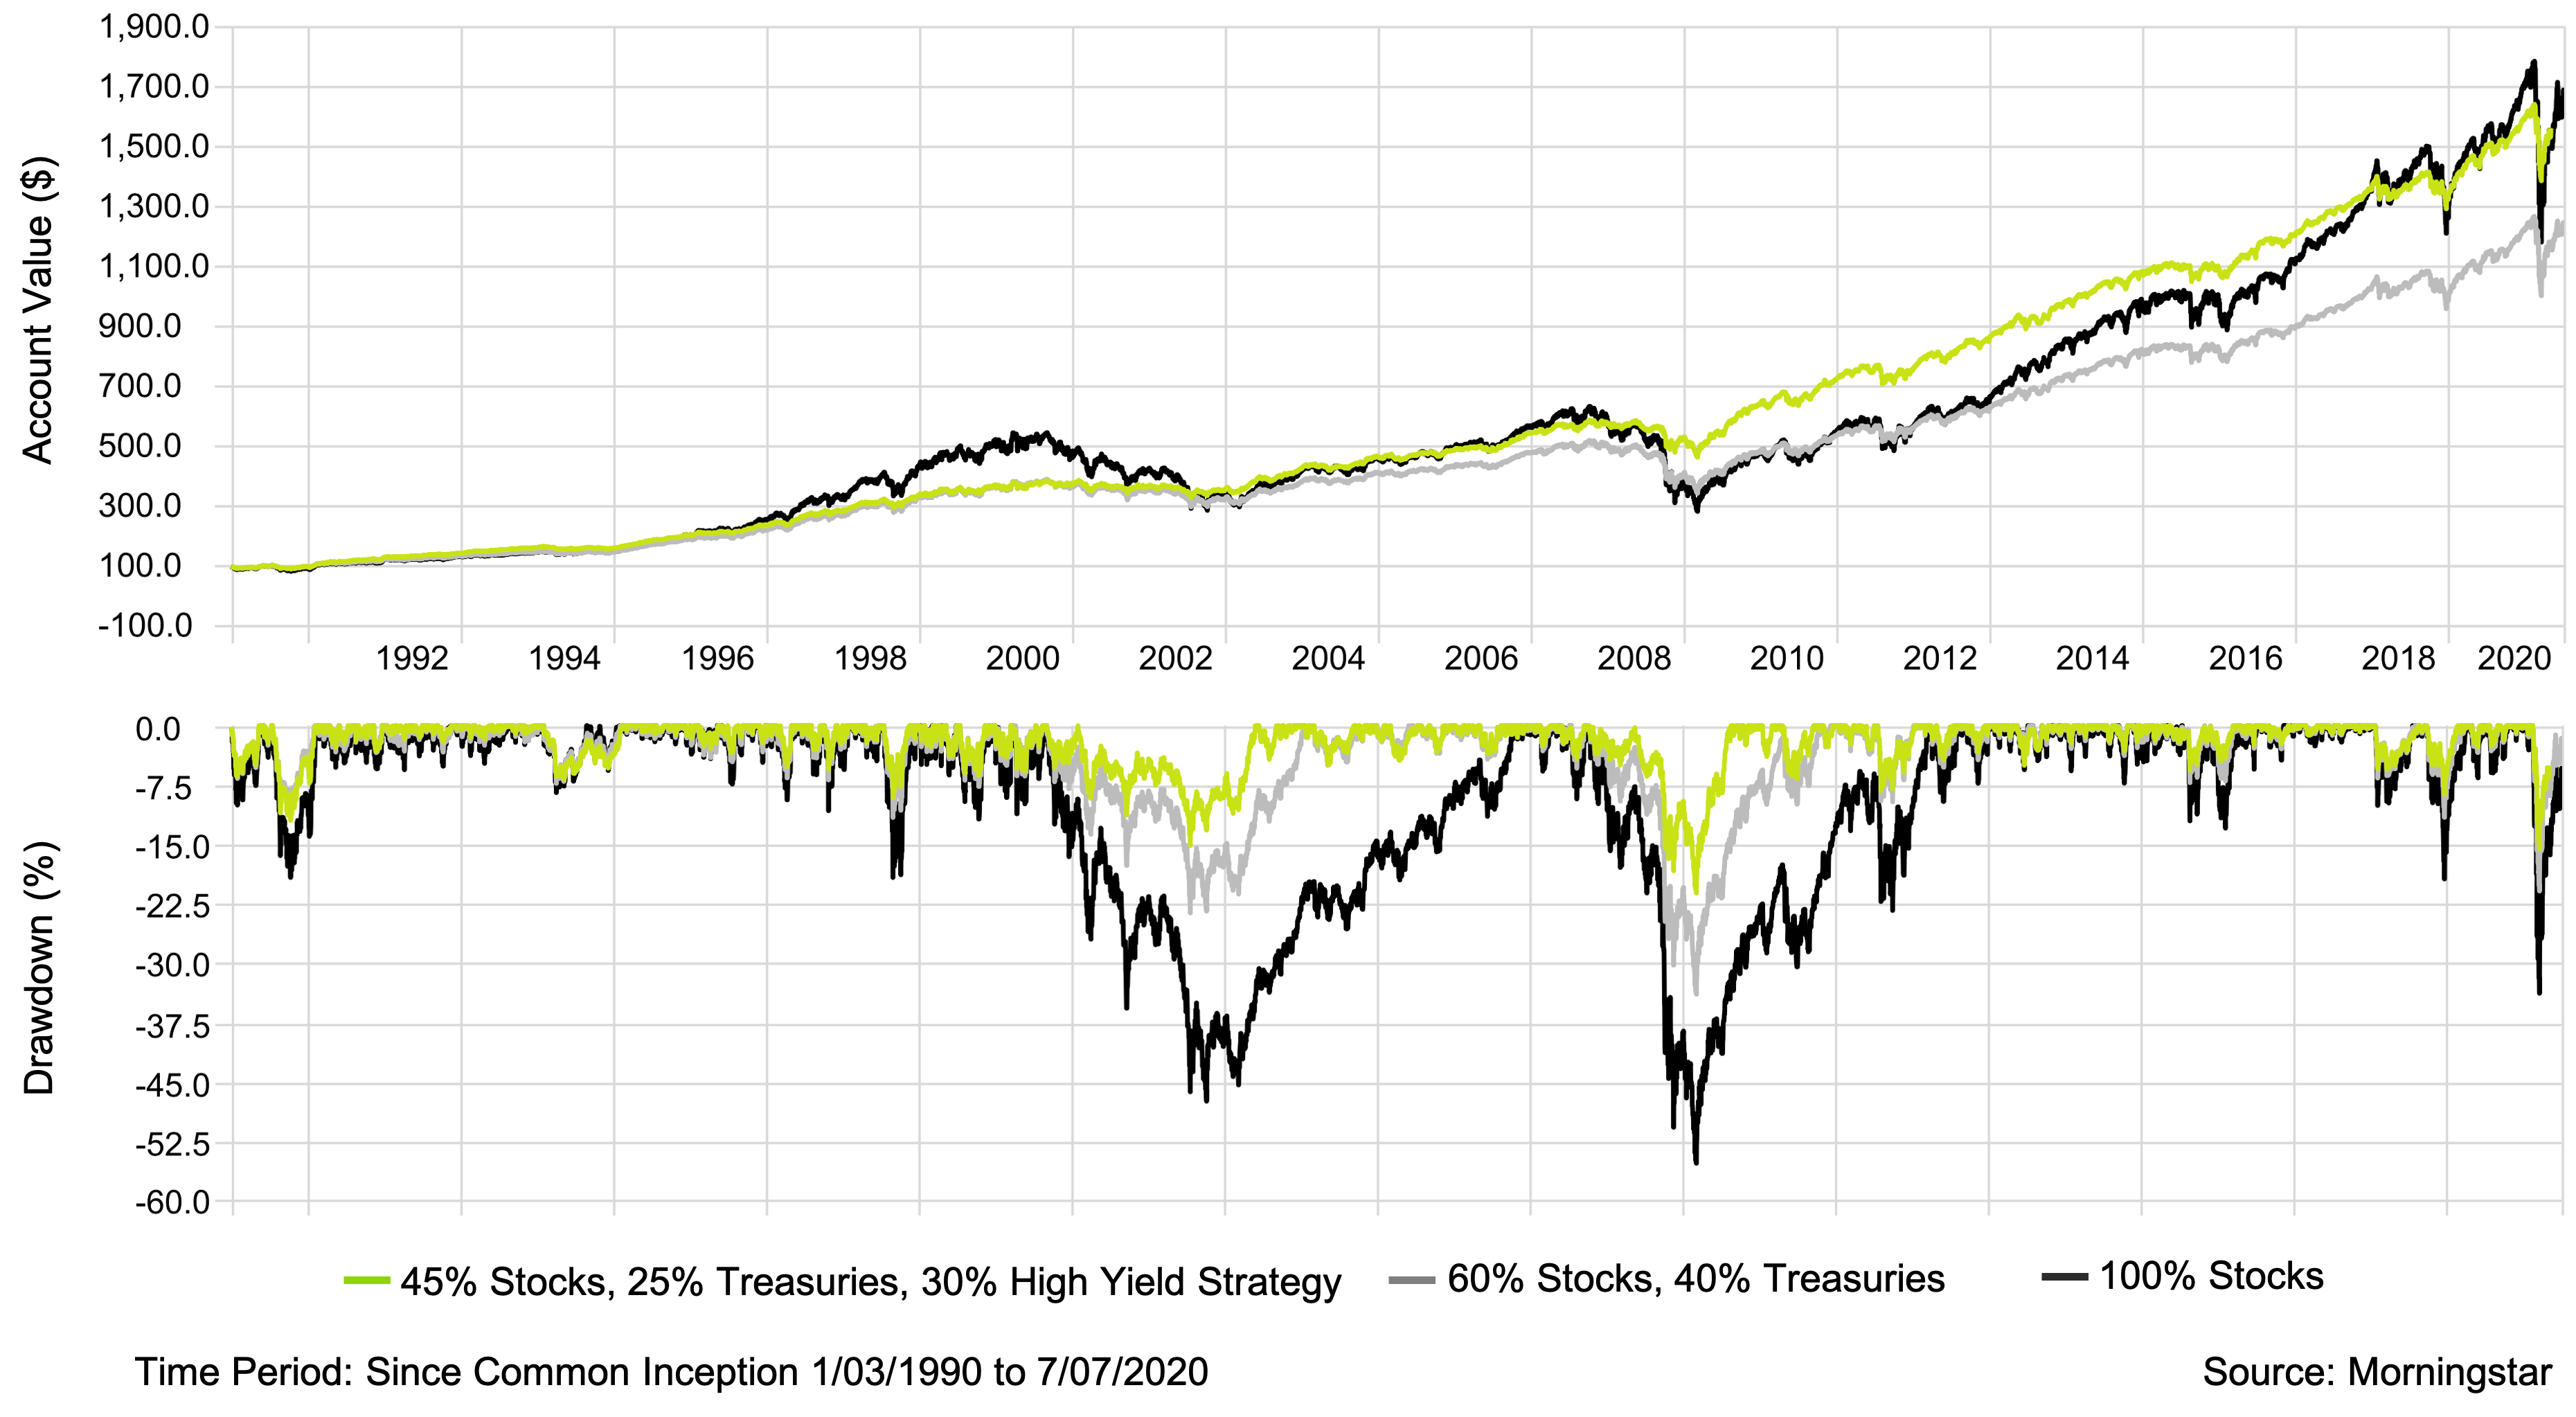 Time Series - Traditional 60-40 vs. 45-25-30 with High Yield Strategy